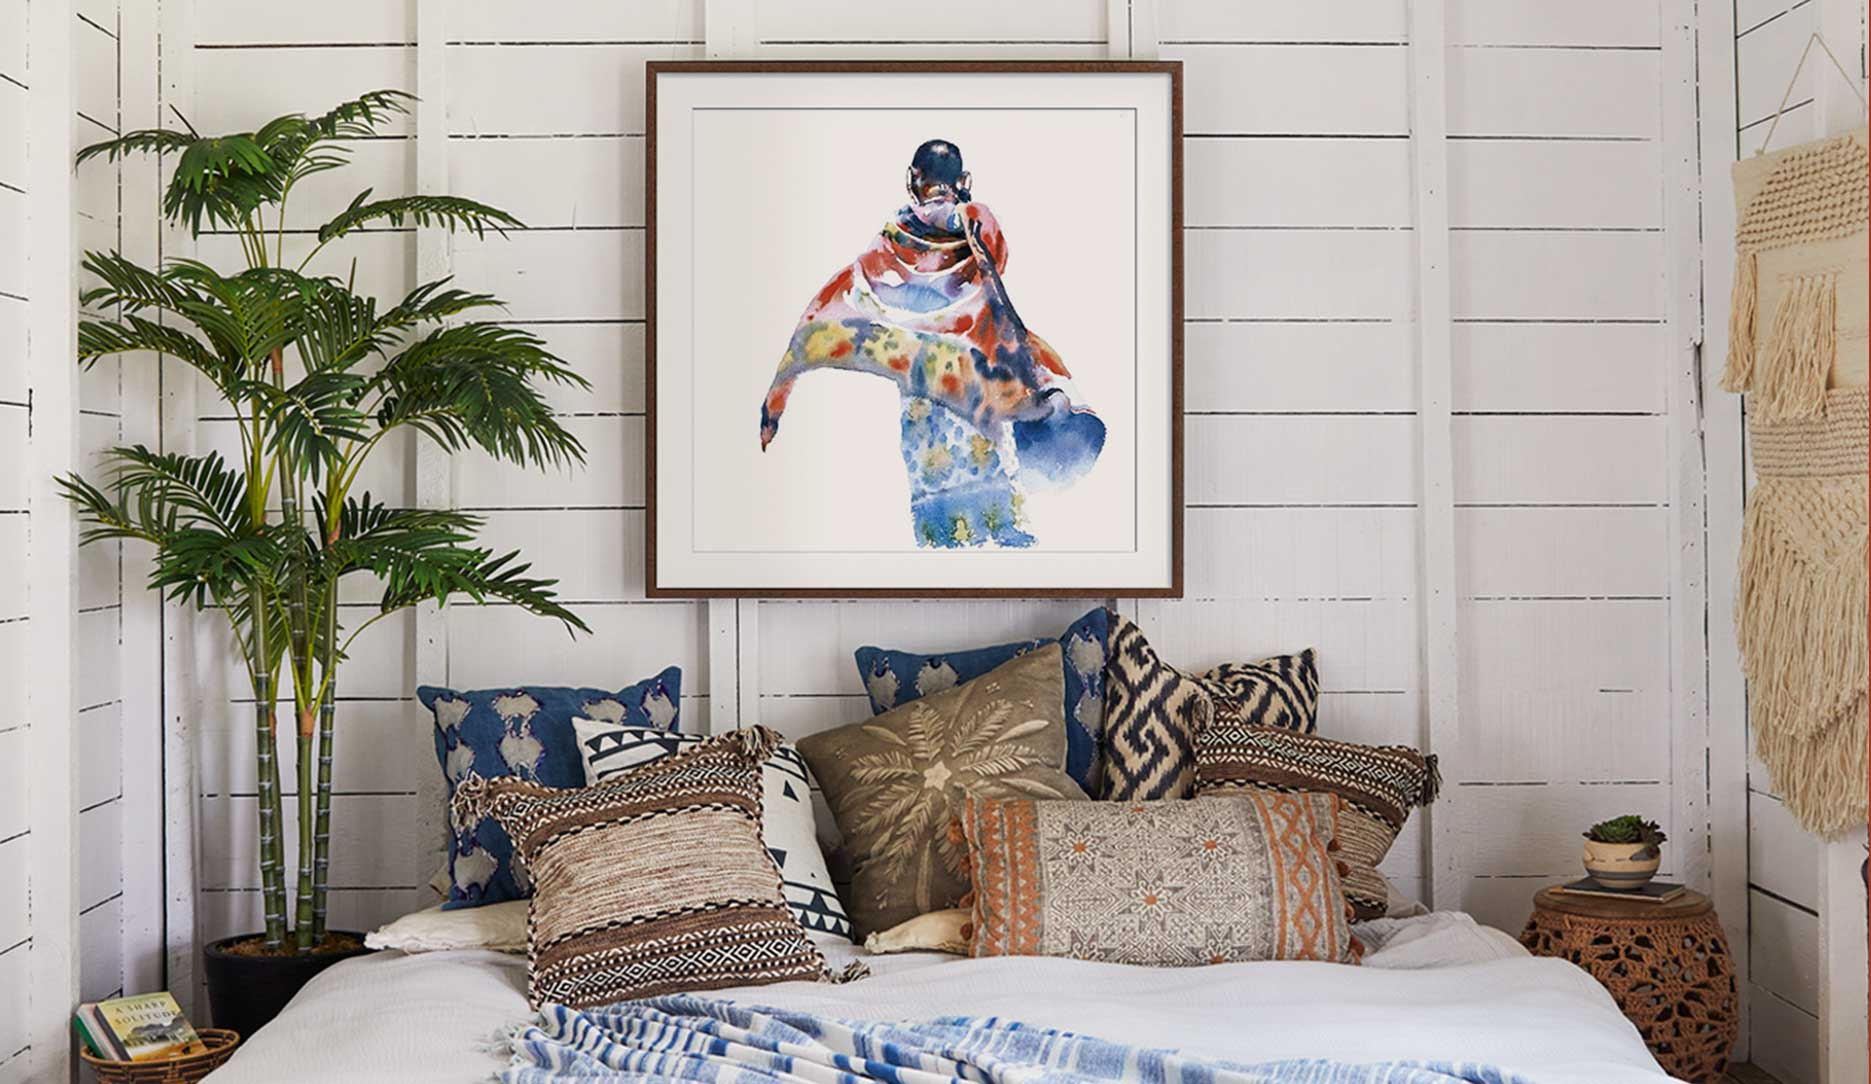 Groovy bohemian art for a whole new generation.